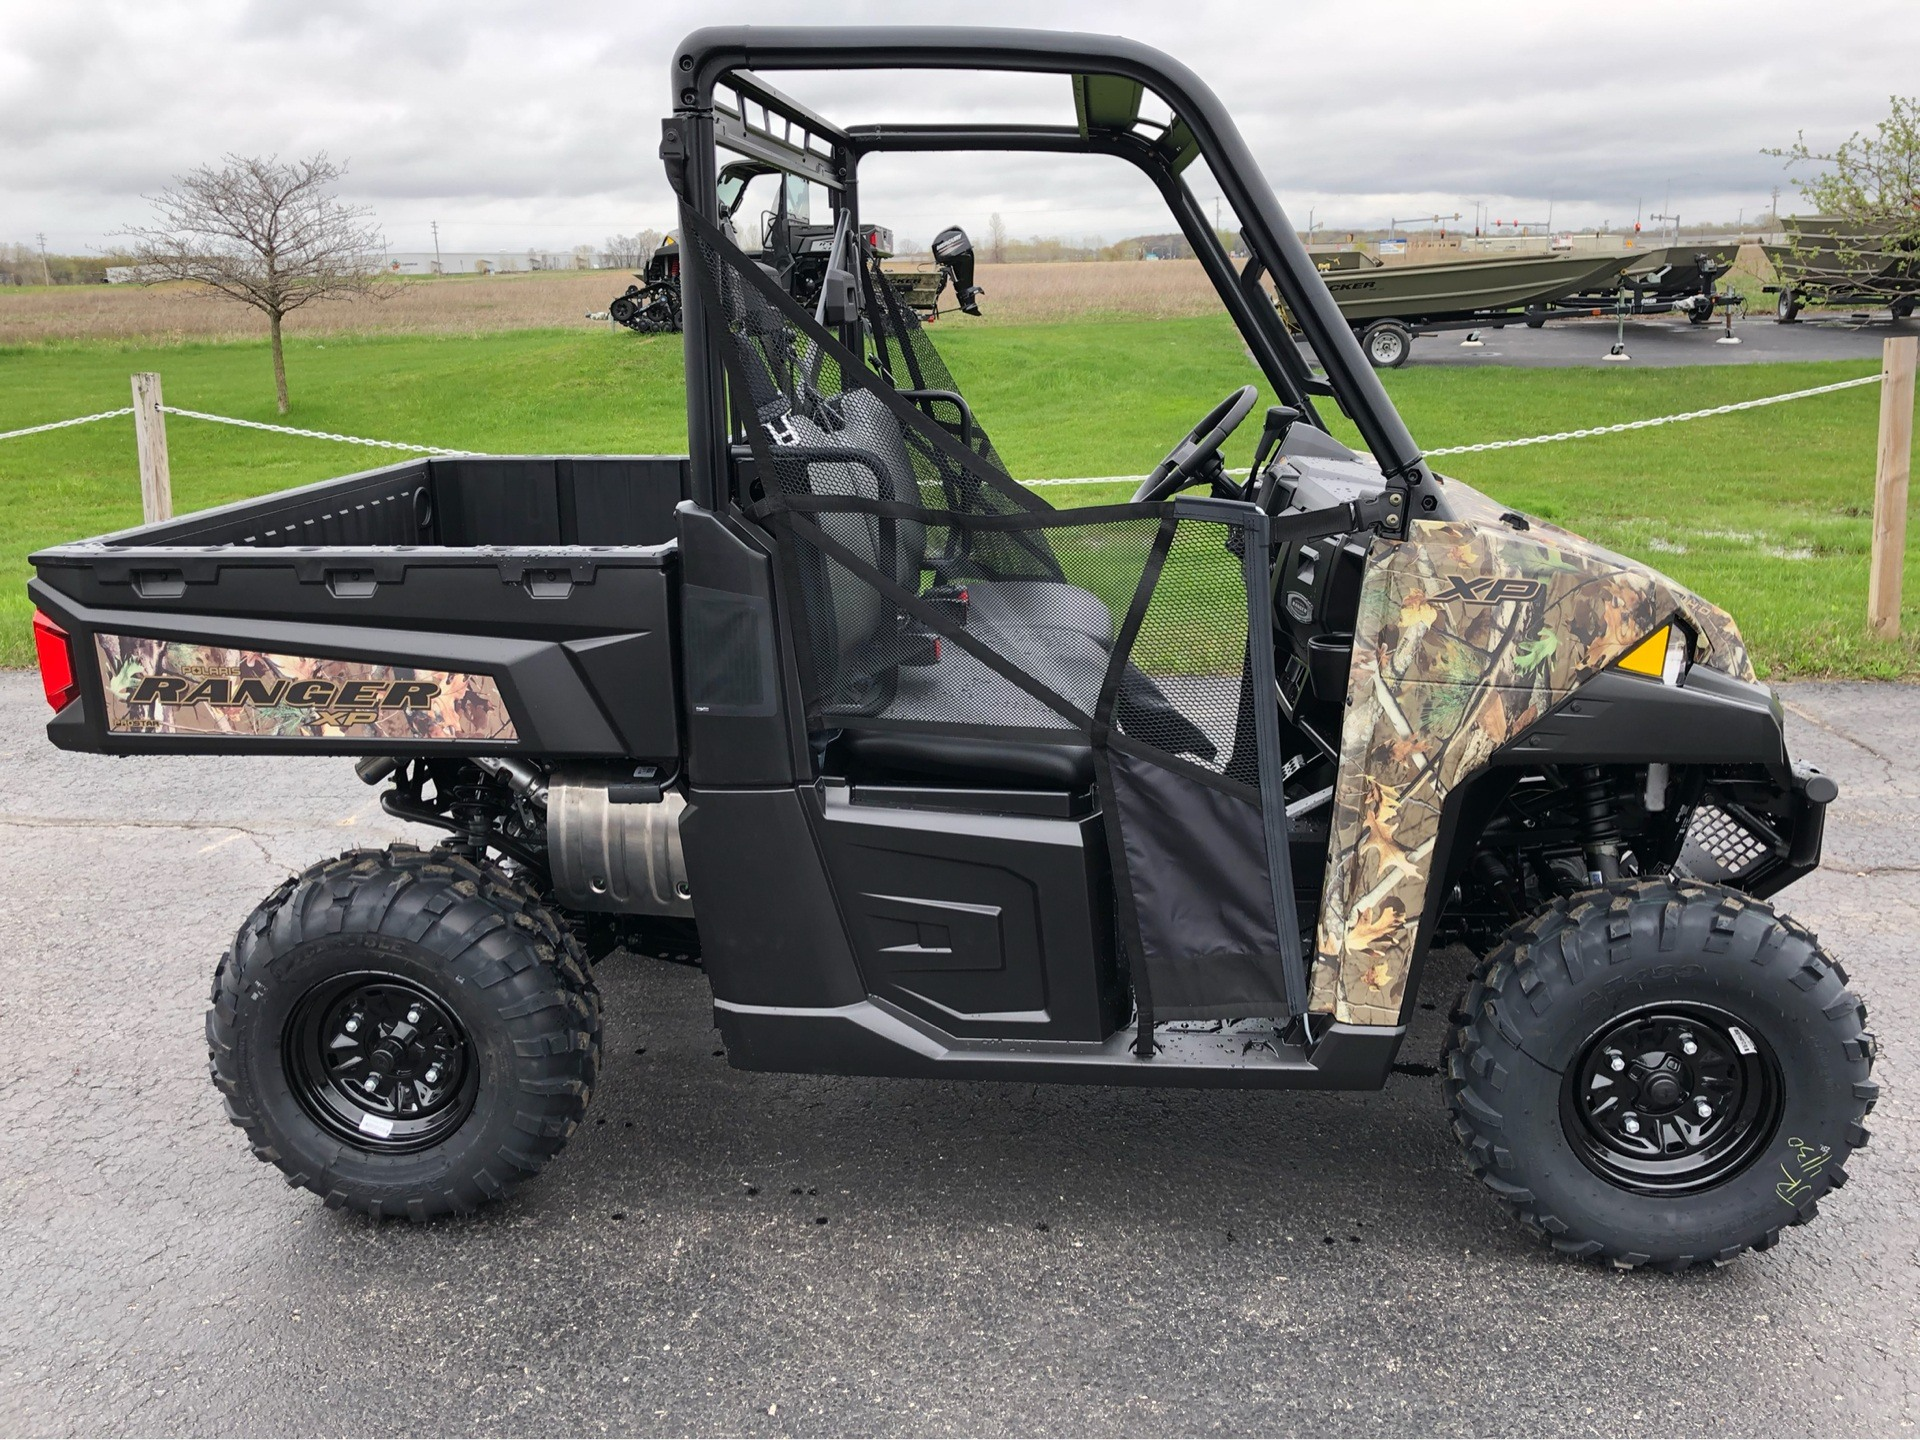 2019 Polaris Ranger XP 900 in Appleton, Wisconsin - Photo 2